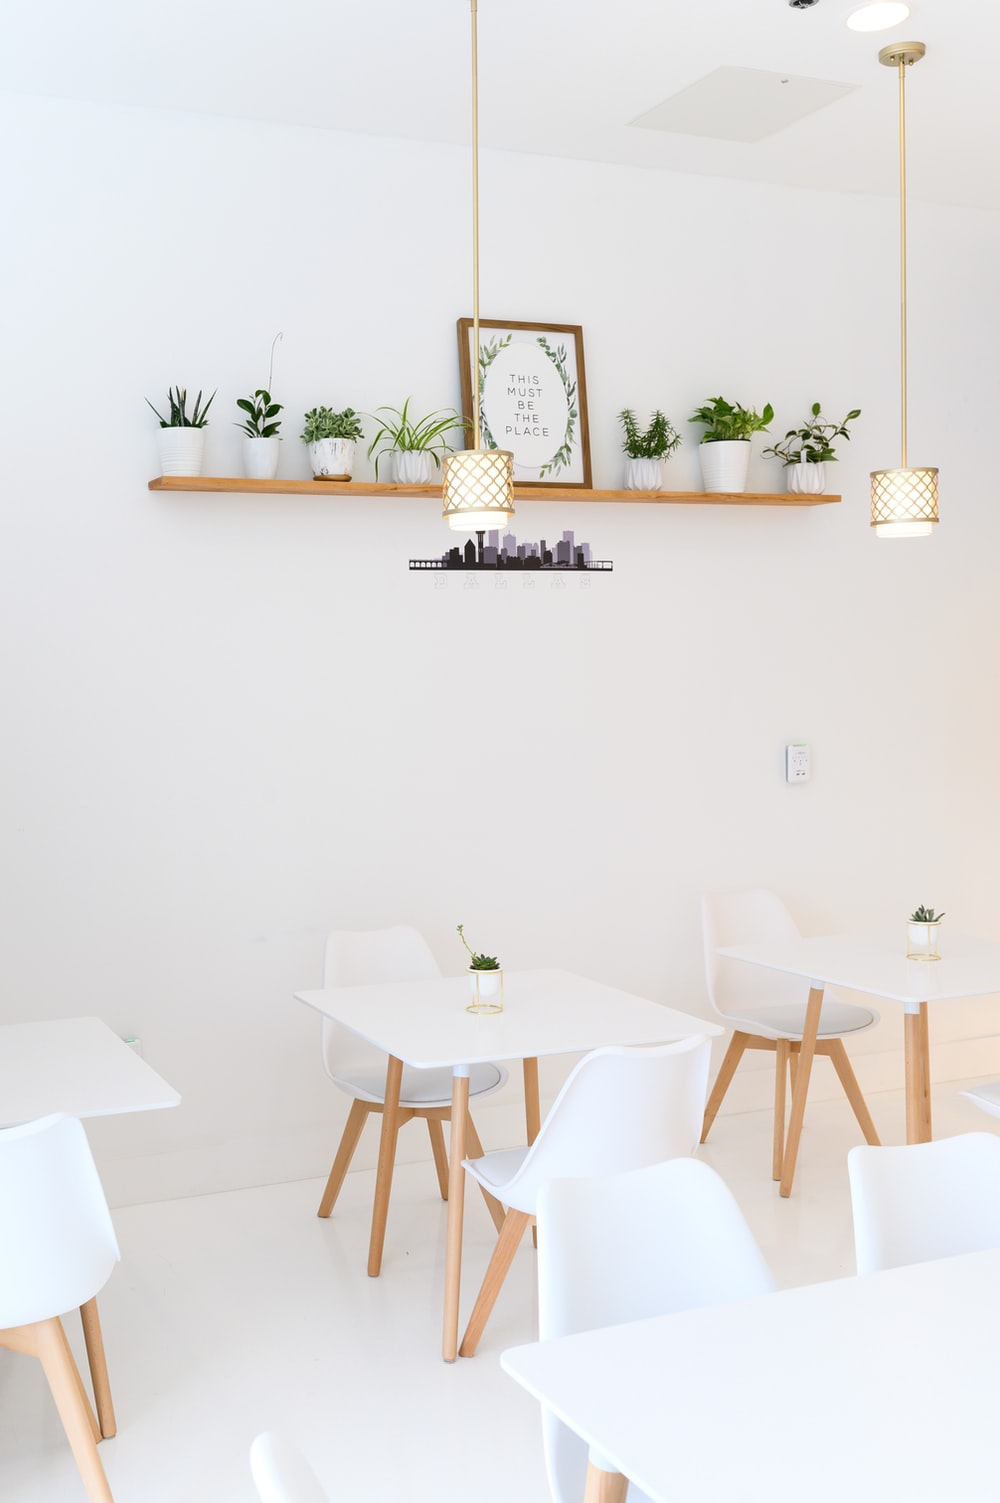 white table with chairs and table cloth